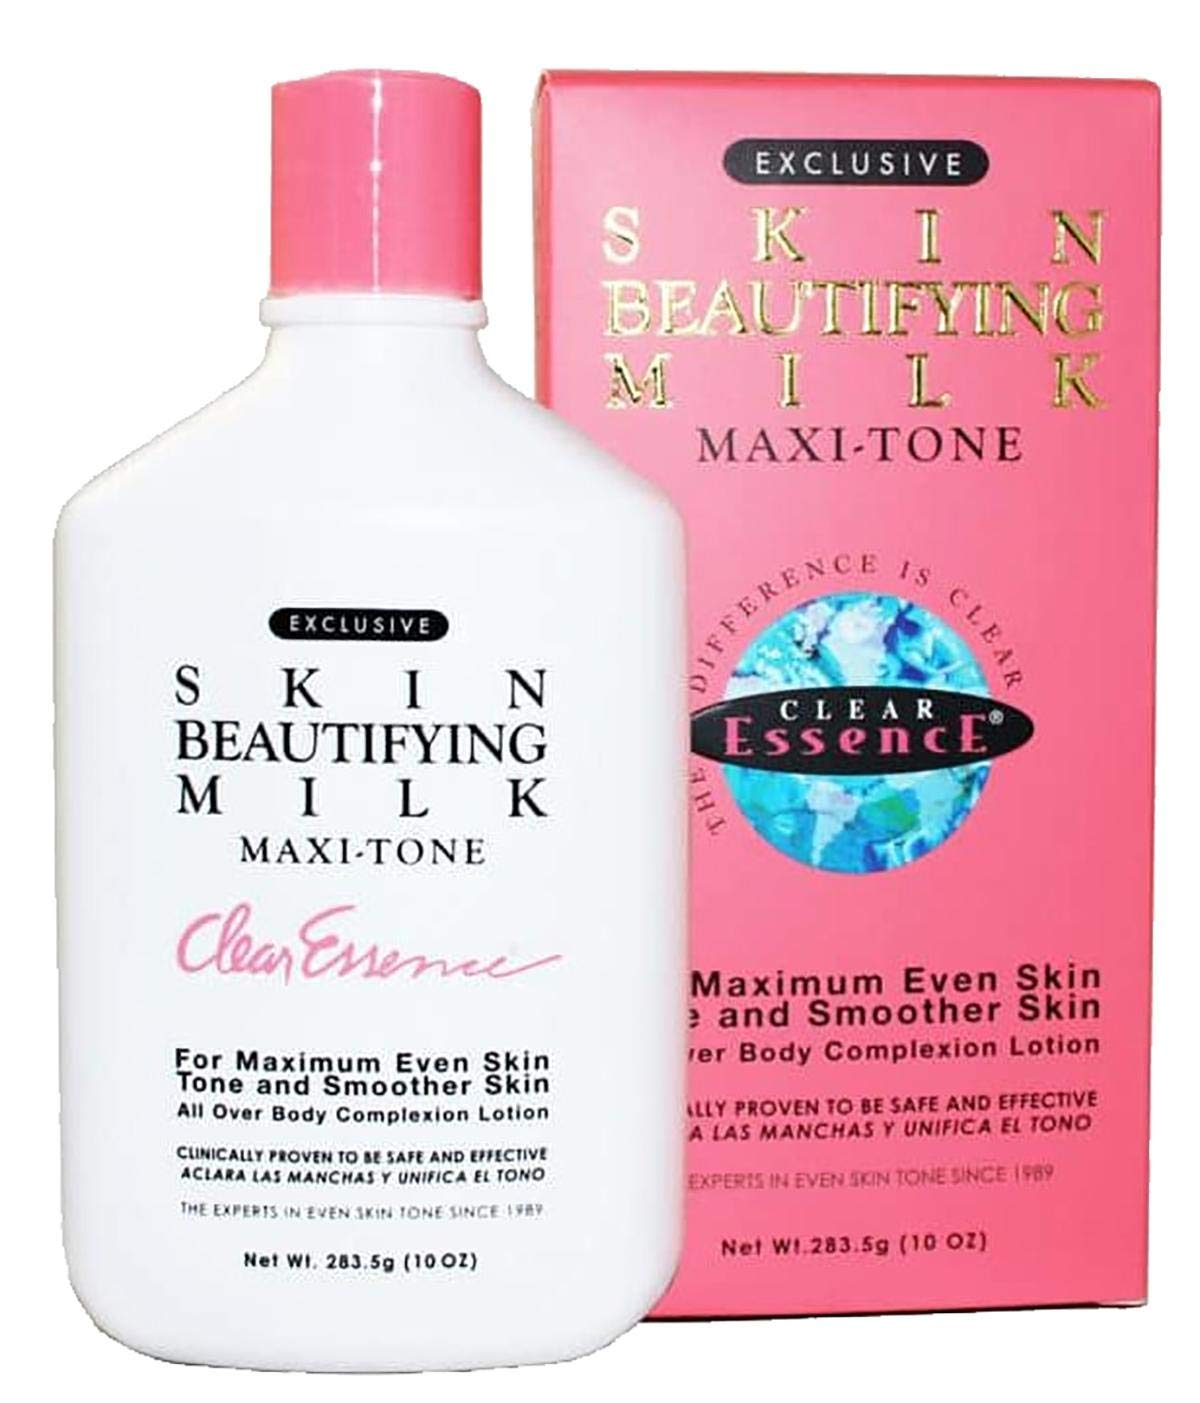 Clear Essence Exclusive Skin Beautifying Milk (Pack of 1)